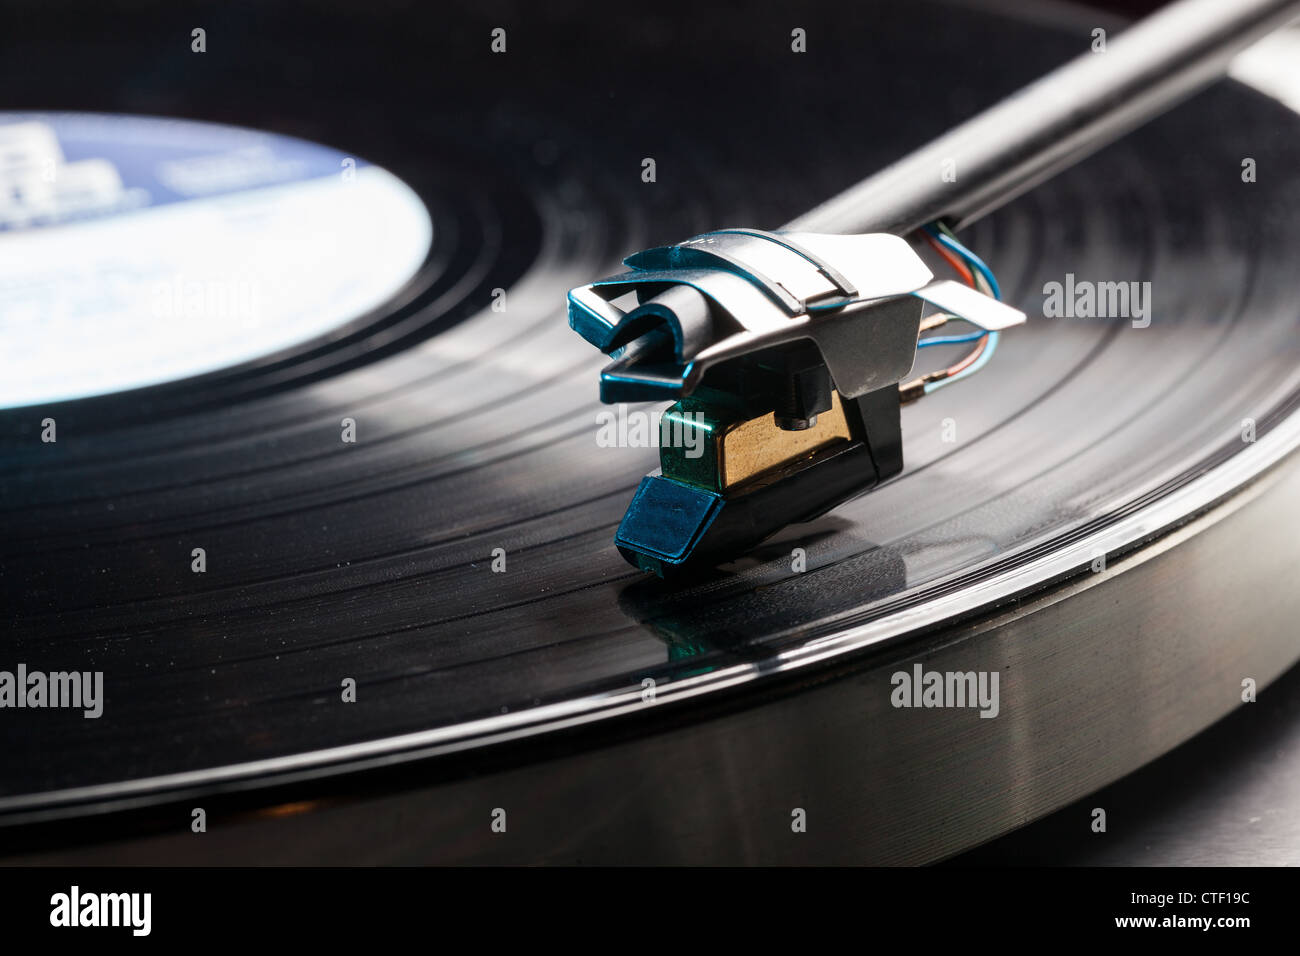 Playing a vinyl record on a record player - LP record on a retro turntable  with tone arm and cartridge - Stock Image